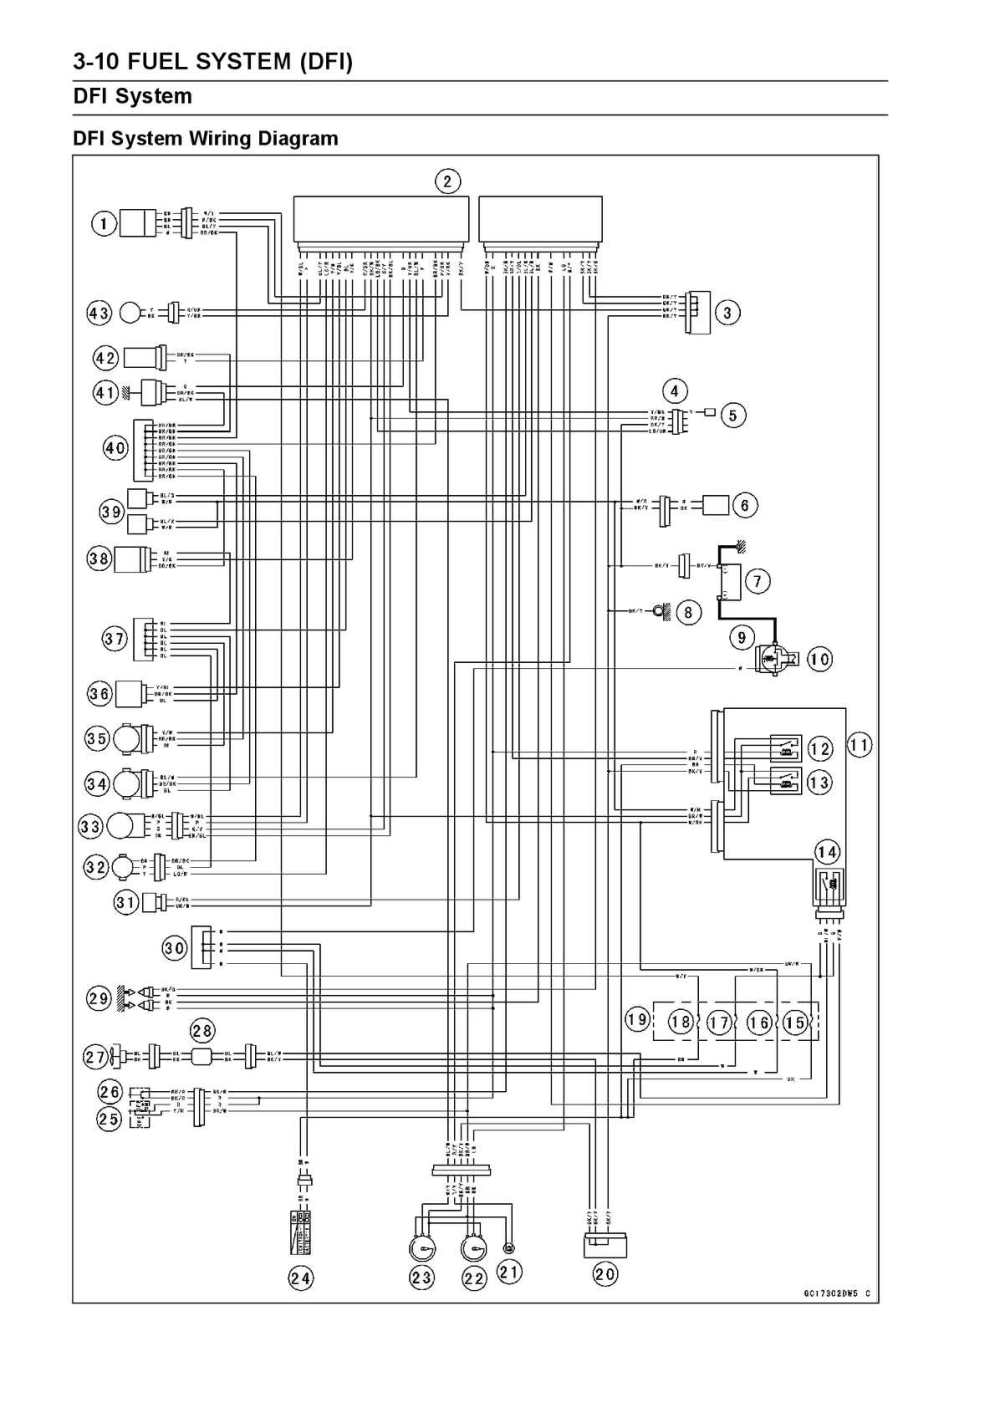 medium resolution of calam o kawasaki ninja 250r fuel system dfi wiring diagram pdf 2008 ninja 250r wiring